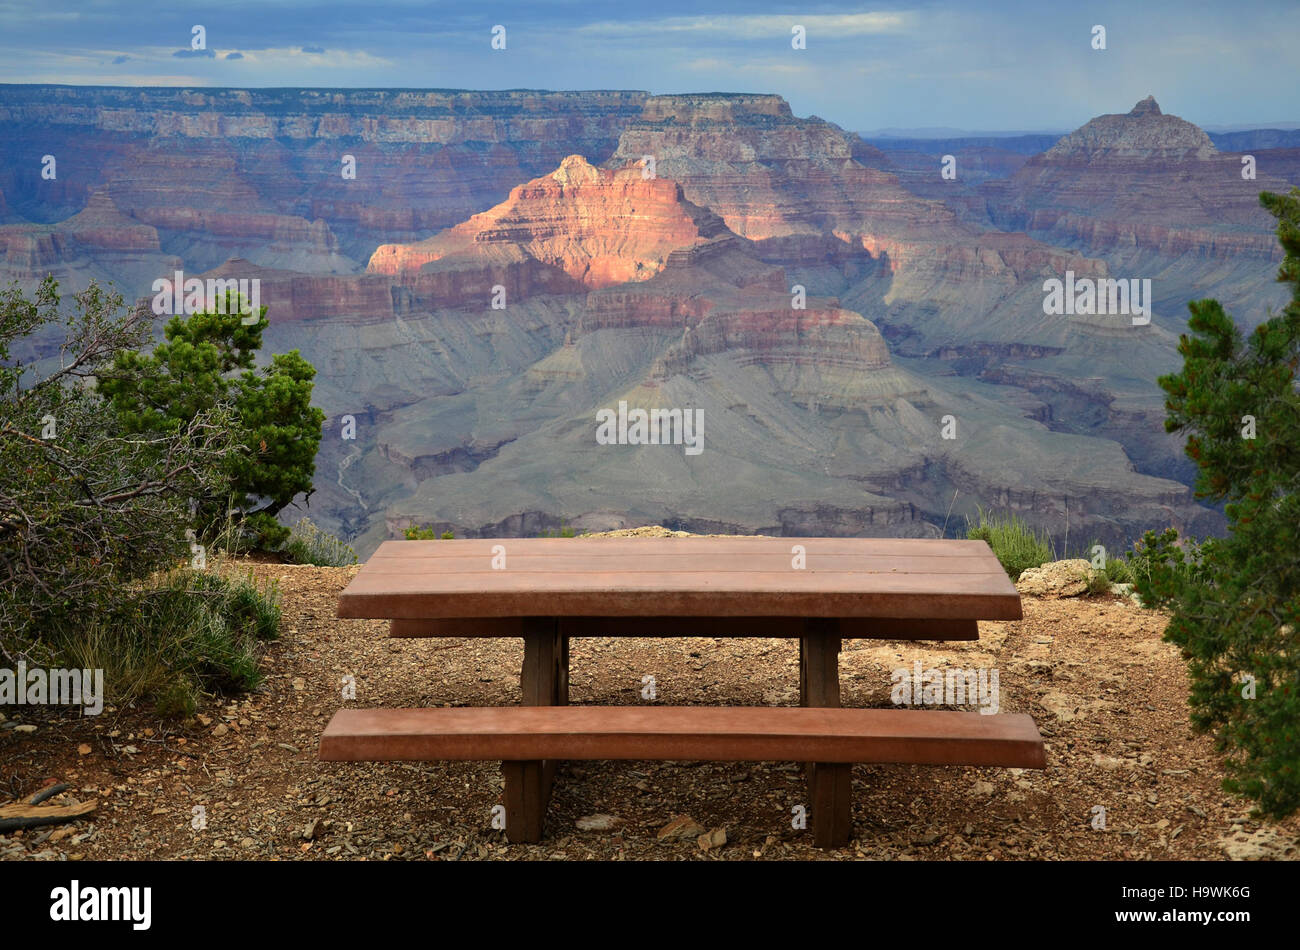 grand canyon nps 7563441552 Grand Canyon National Park; View from Shoshone Point 8400 - Stock Image